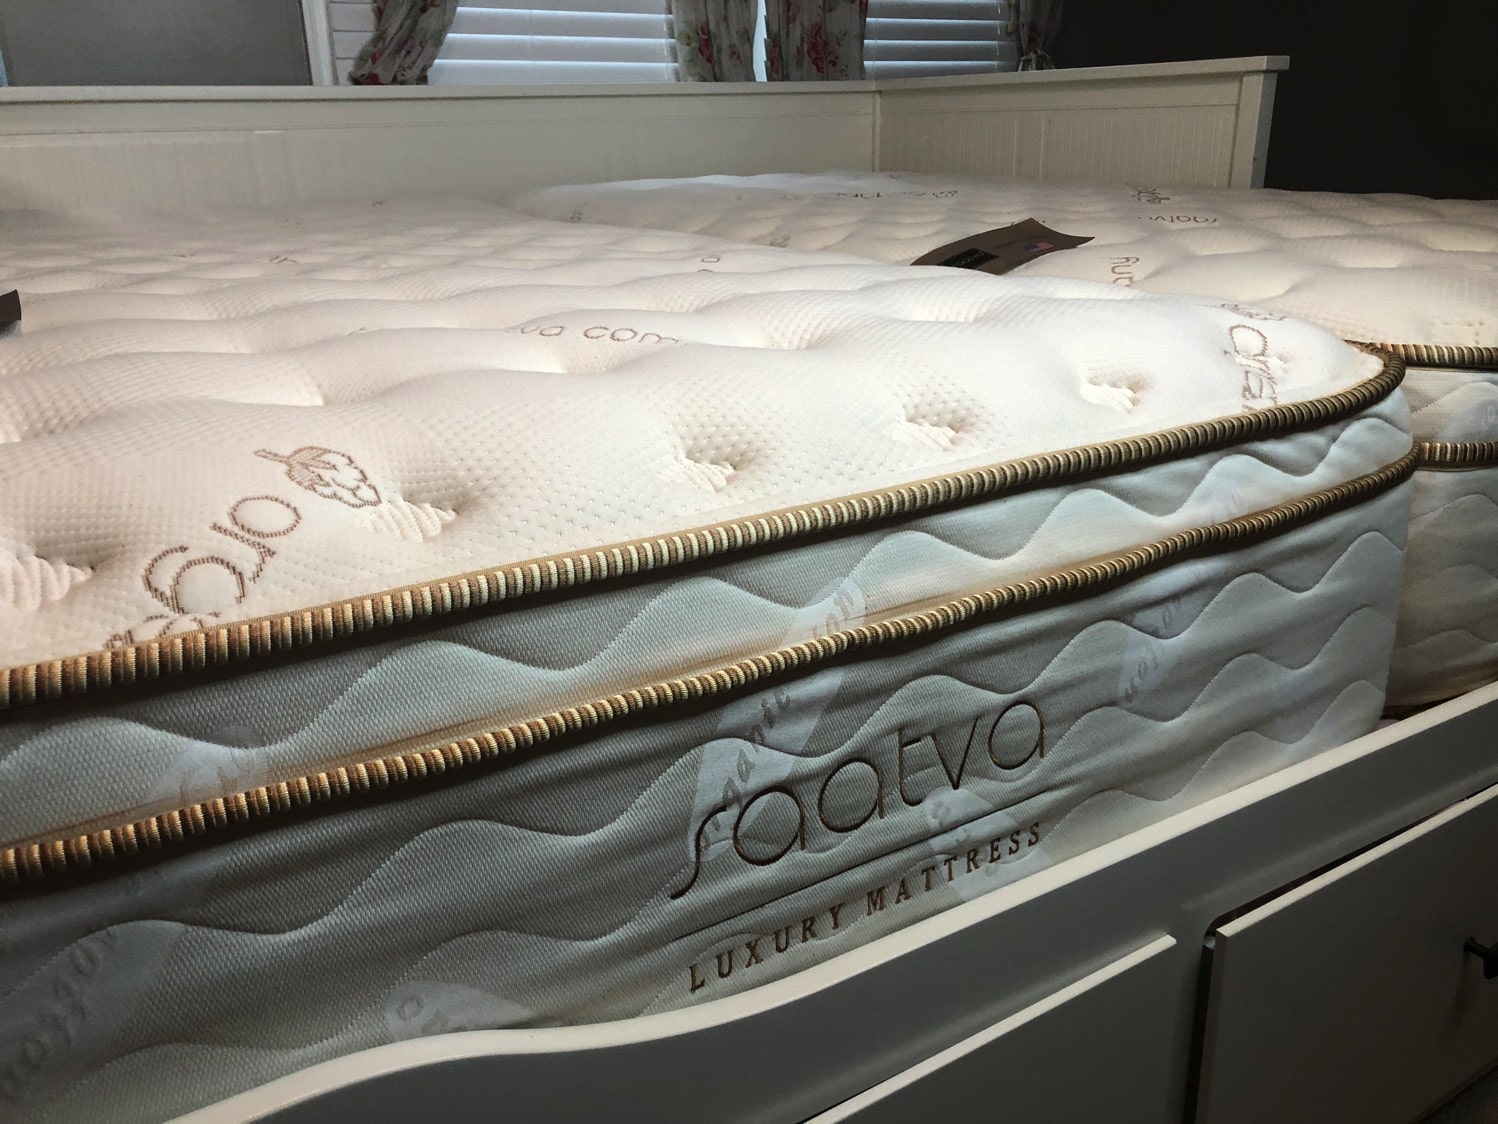 saatva mattress luxury firm 11.5 inches